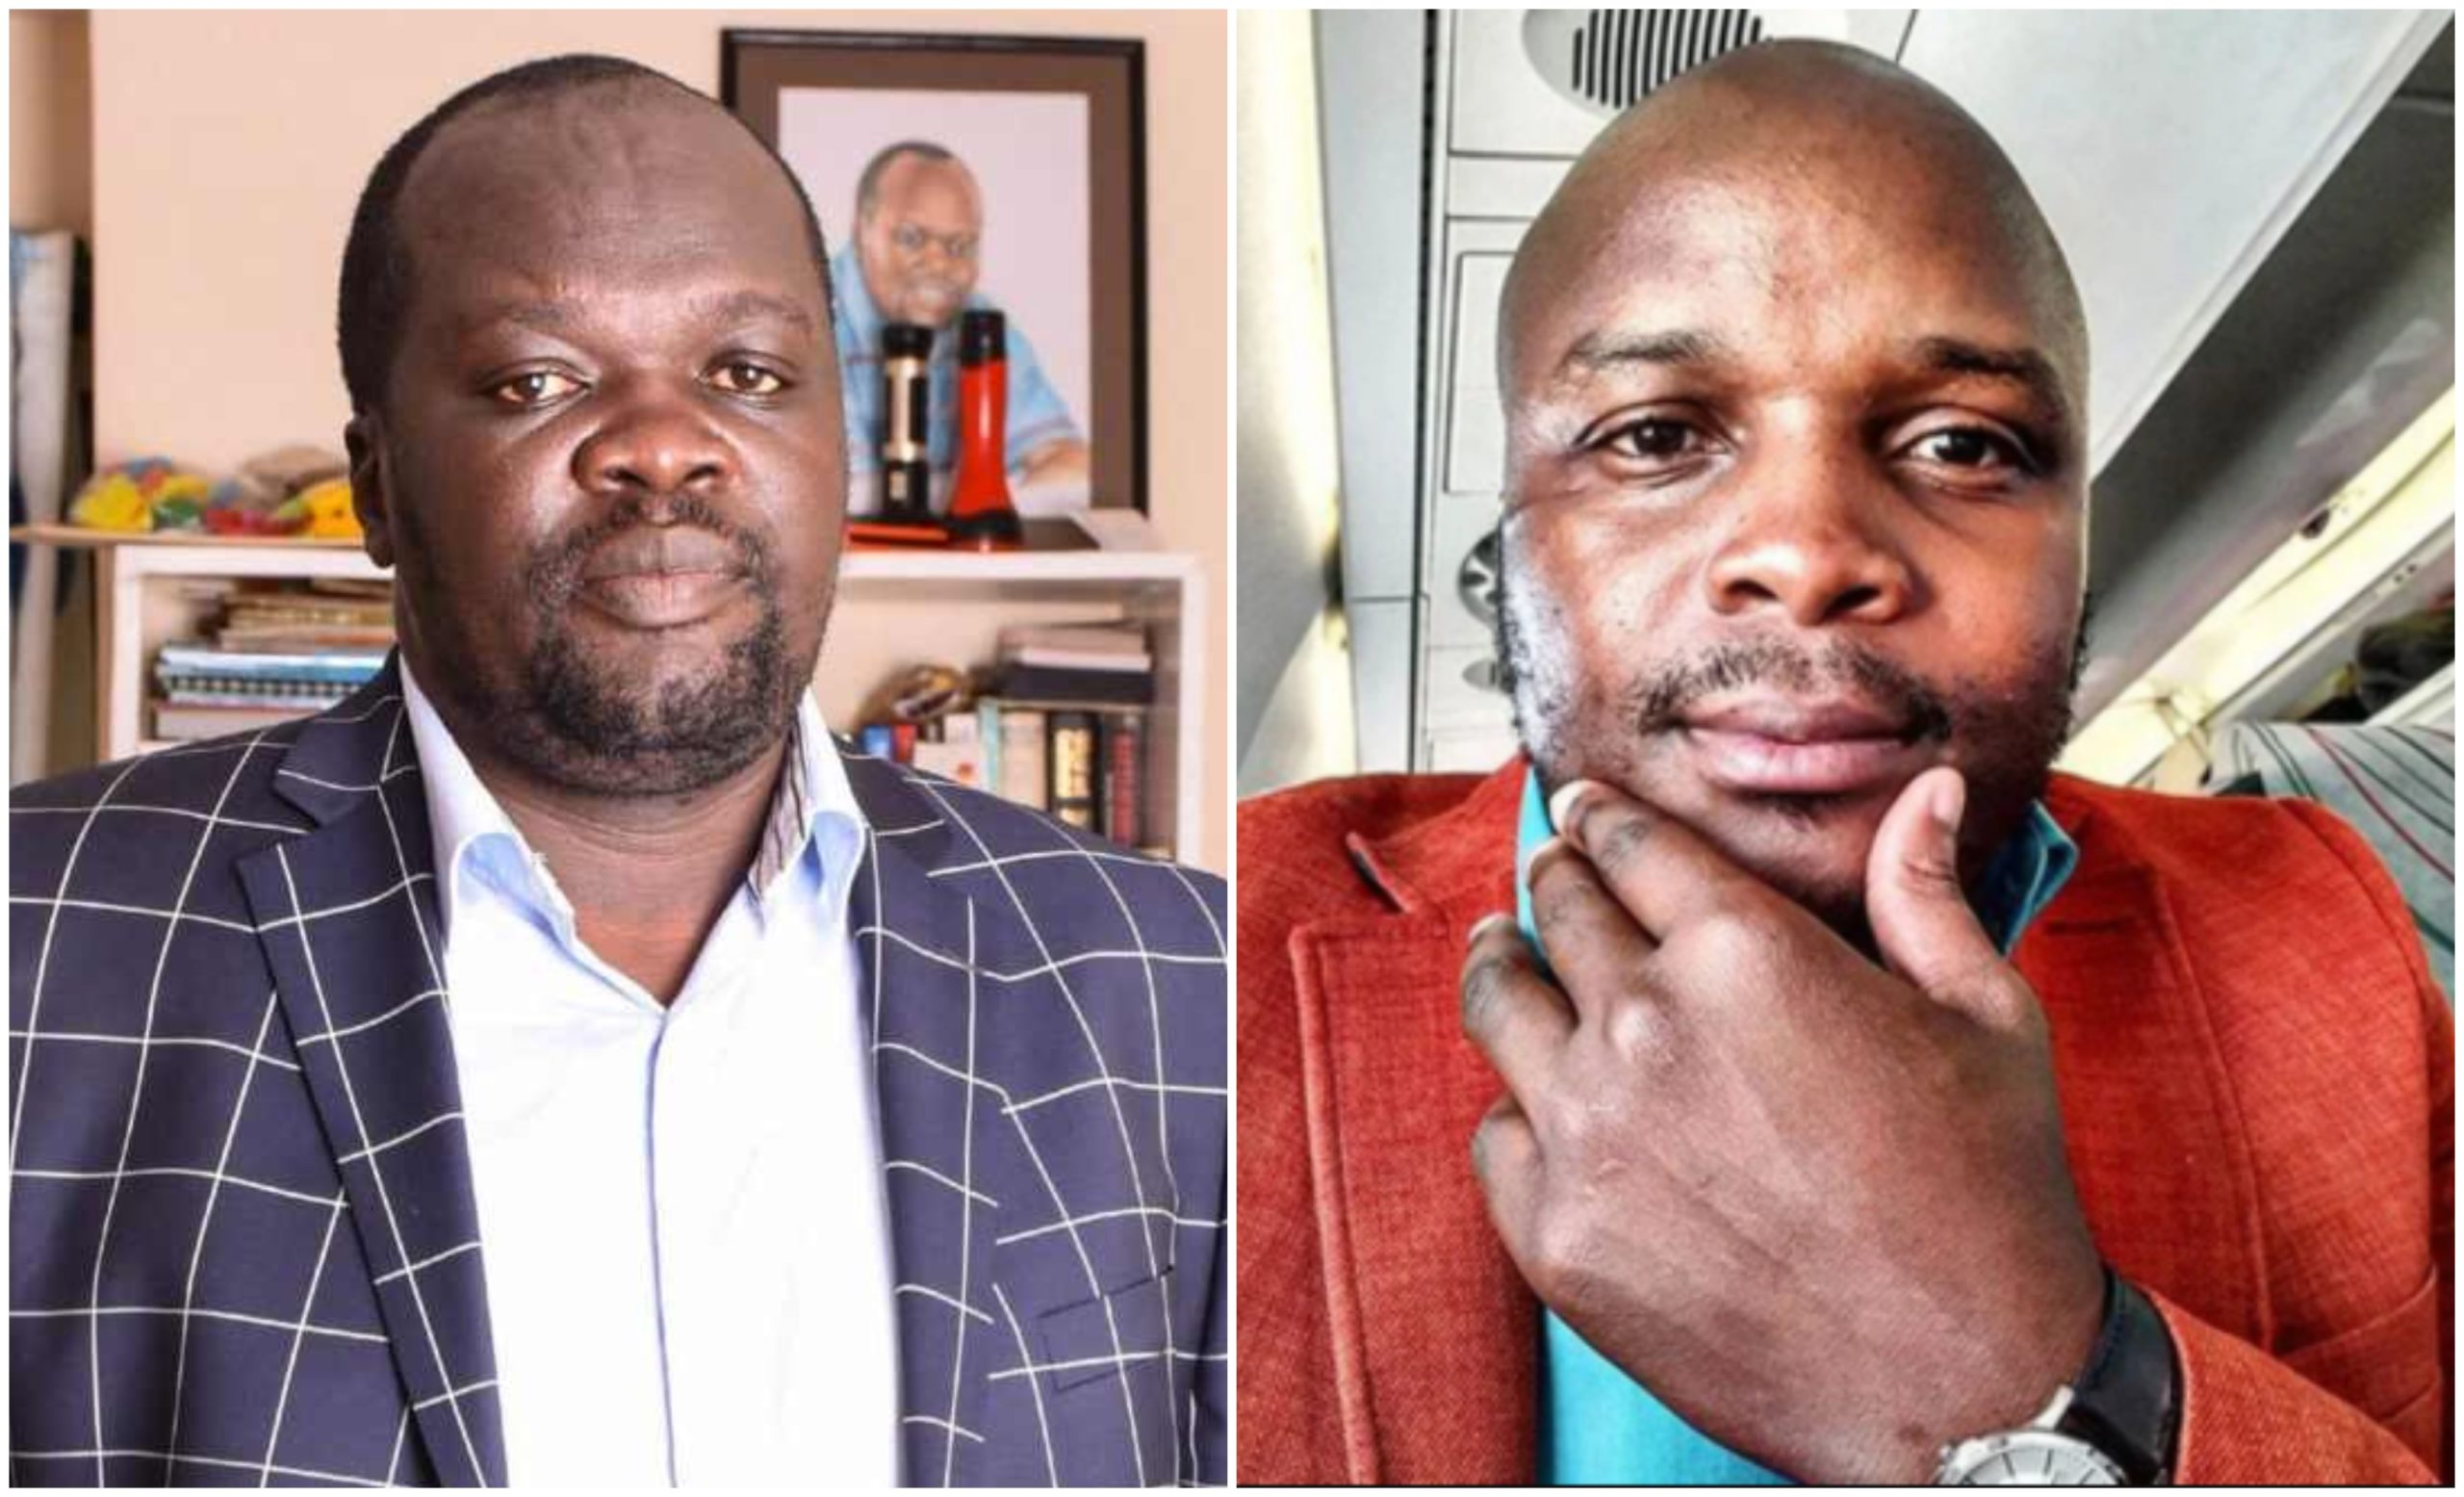 ¨We can no longer be friends!¨ Robert Alai cuts ties with members of the Boys Club